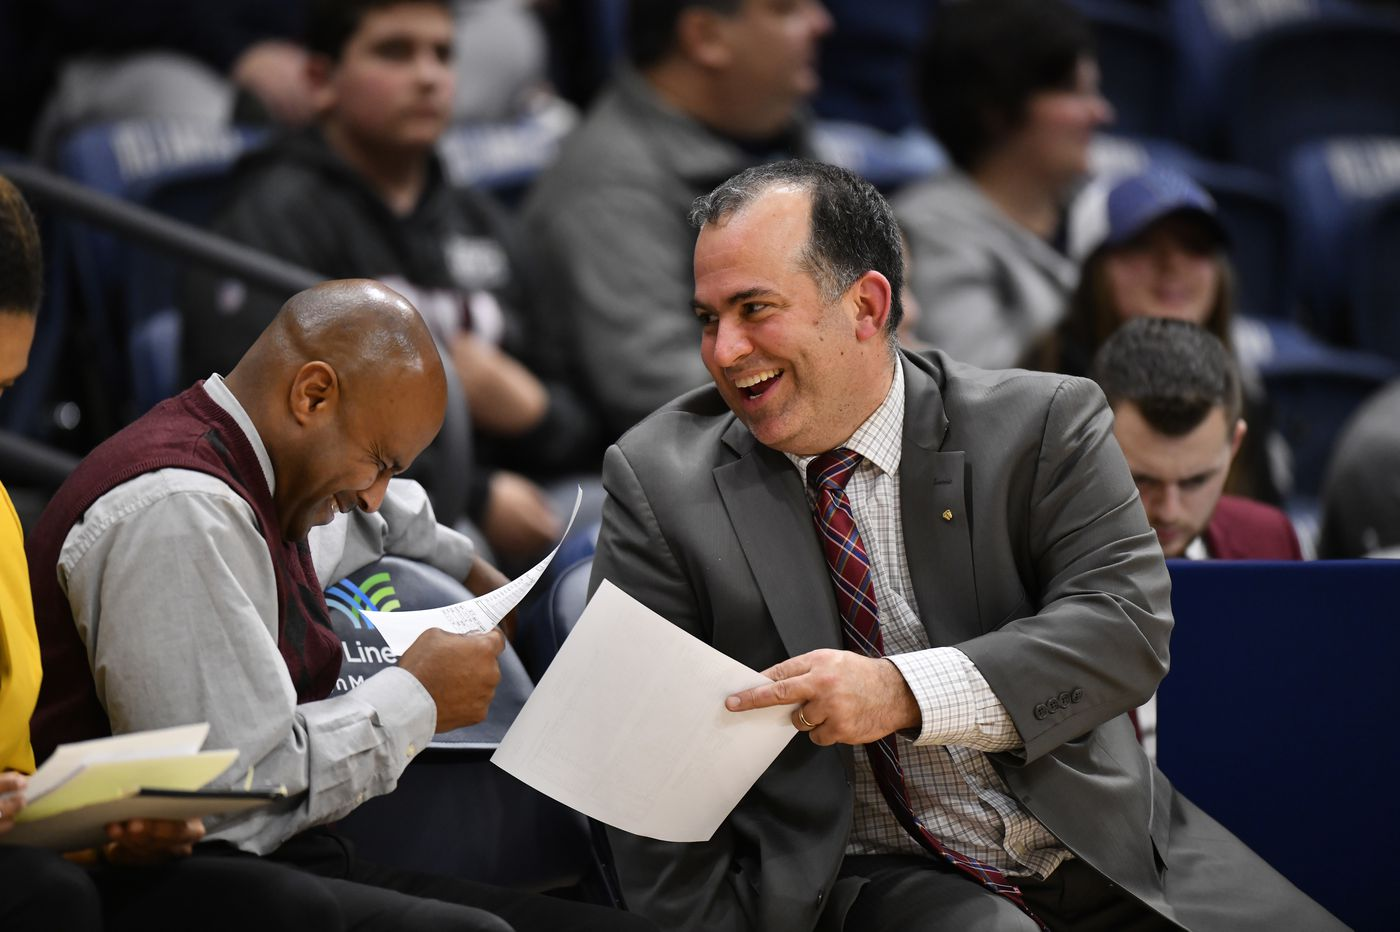 La Salle women's basketball coach Mountain MacGillivray charted a unique path to 20th and Olney | Mike Jensen